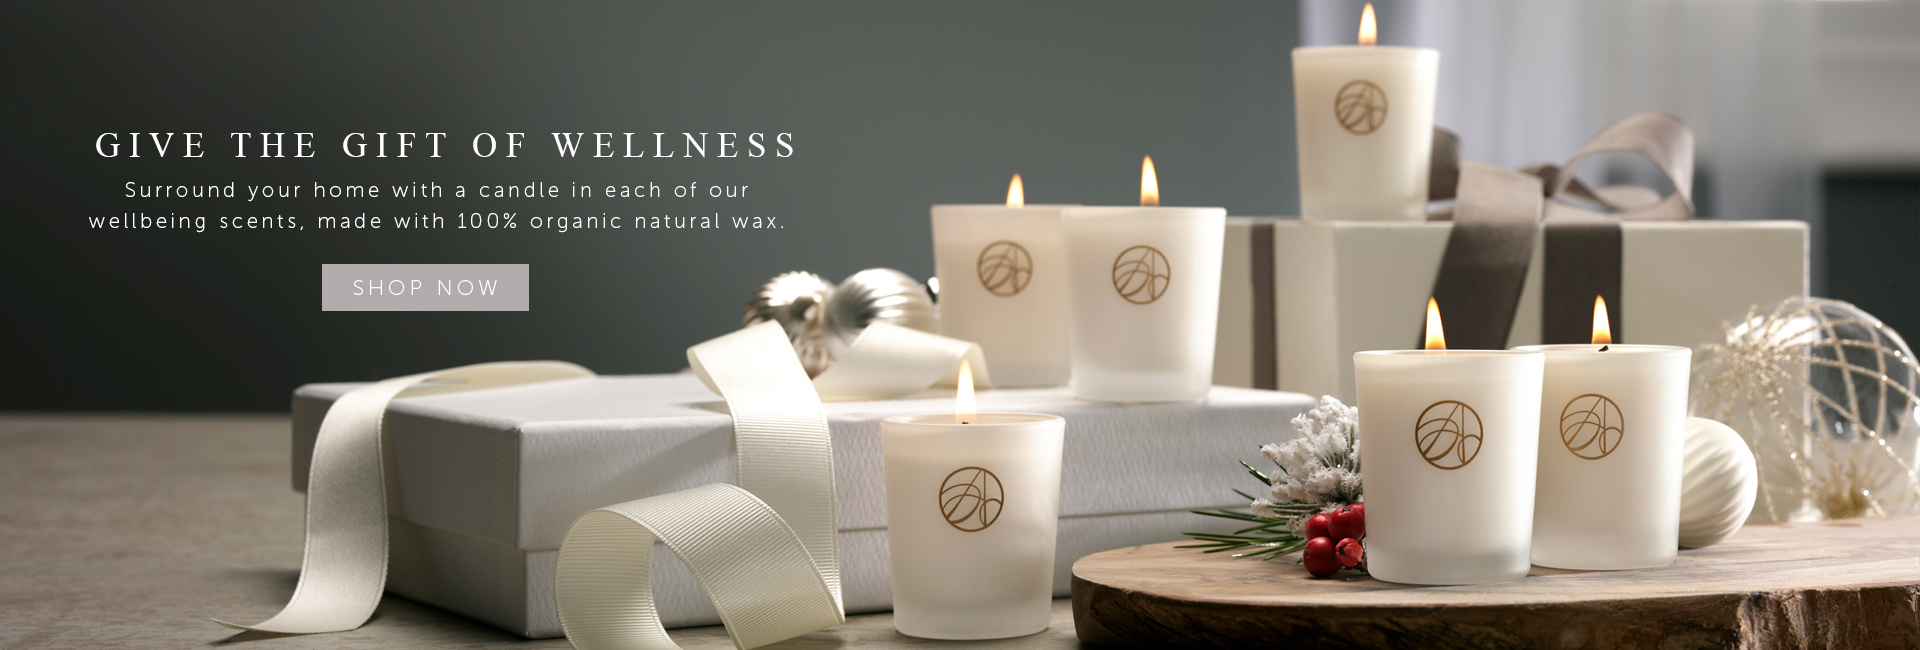 ARDERE's The Self-discovery Candle Collection Gift Set Christmas Banner